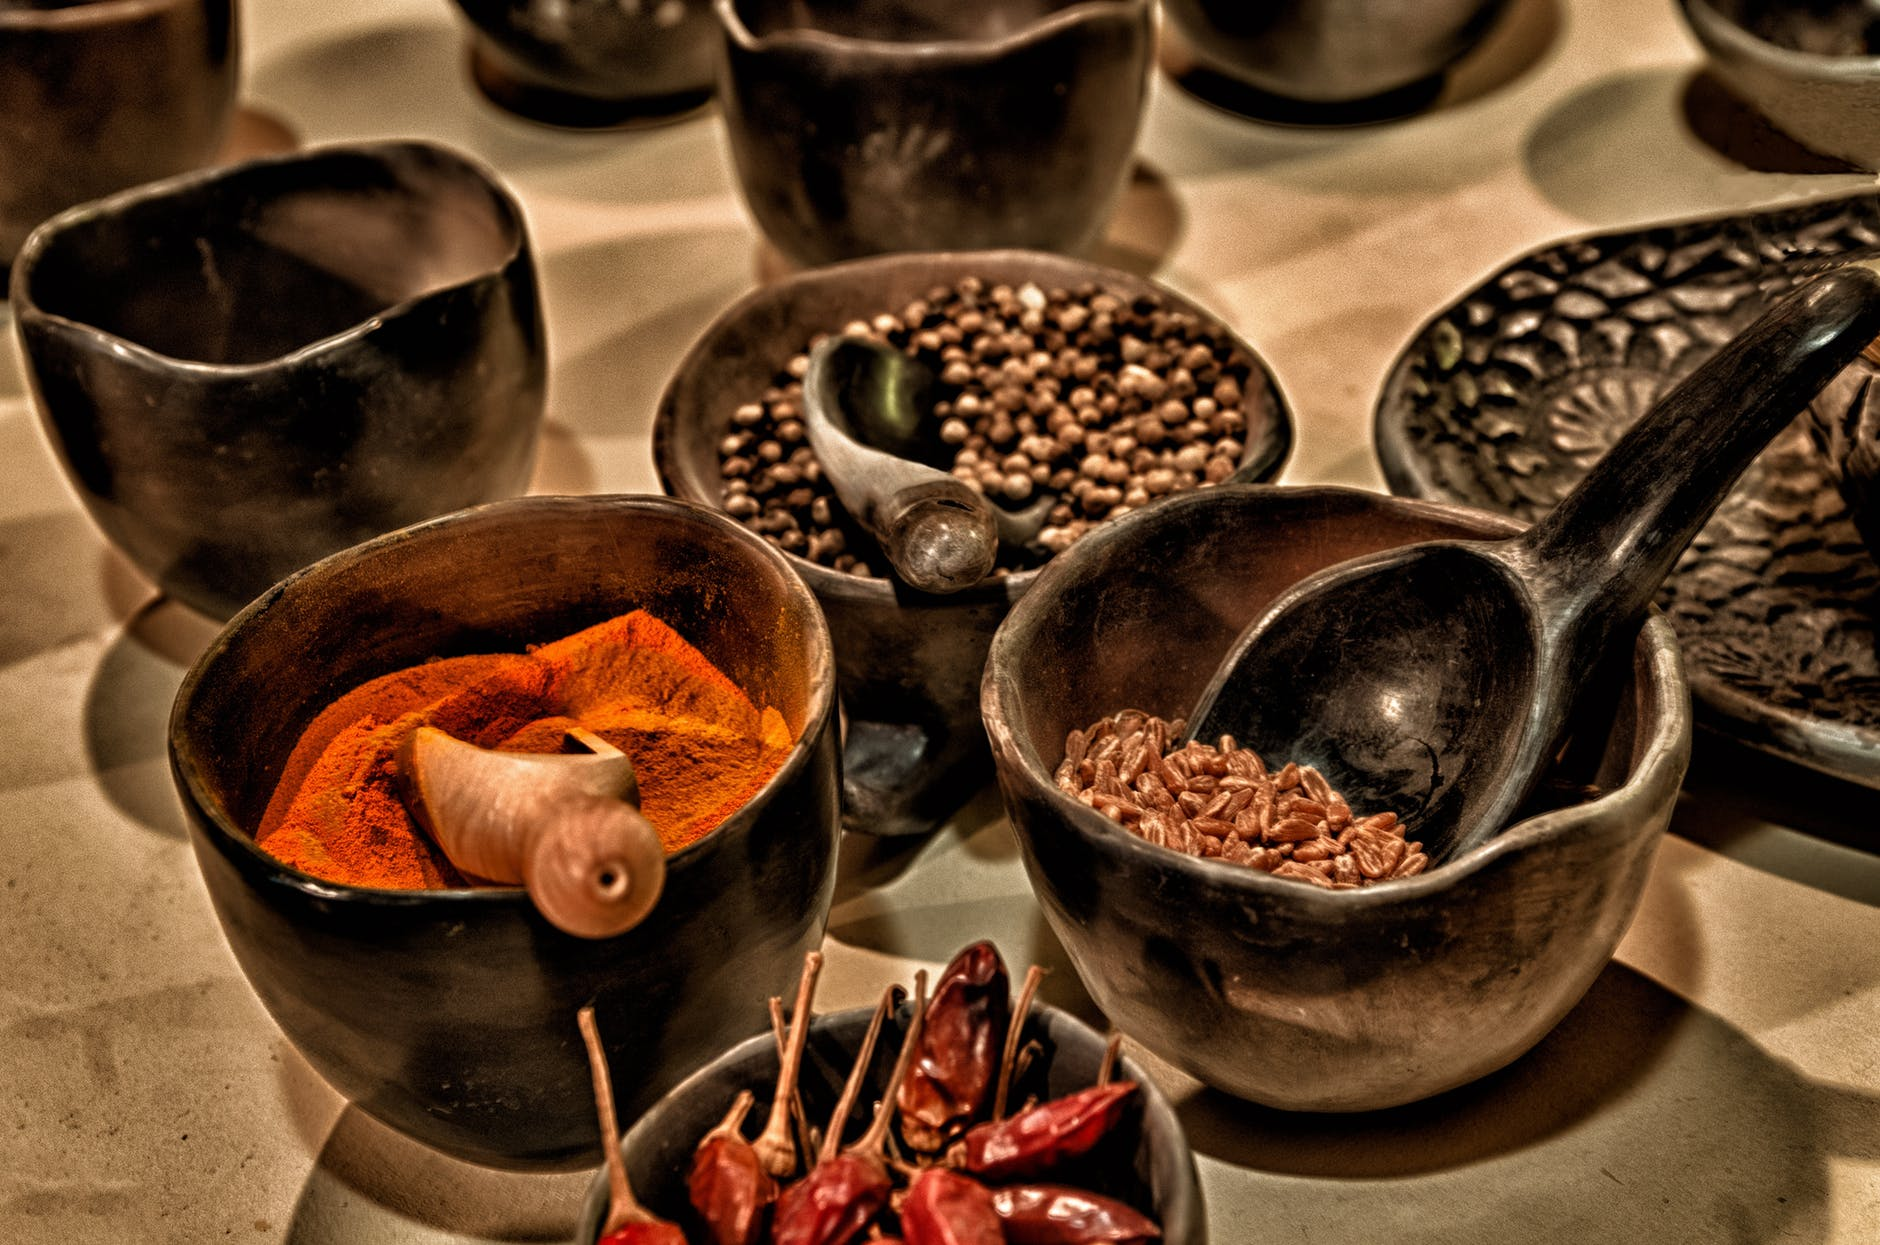 Spices, ground and whole